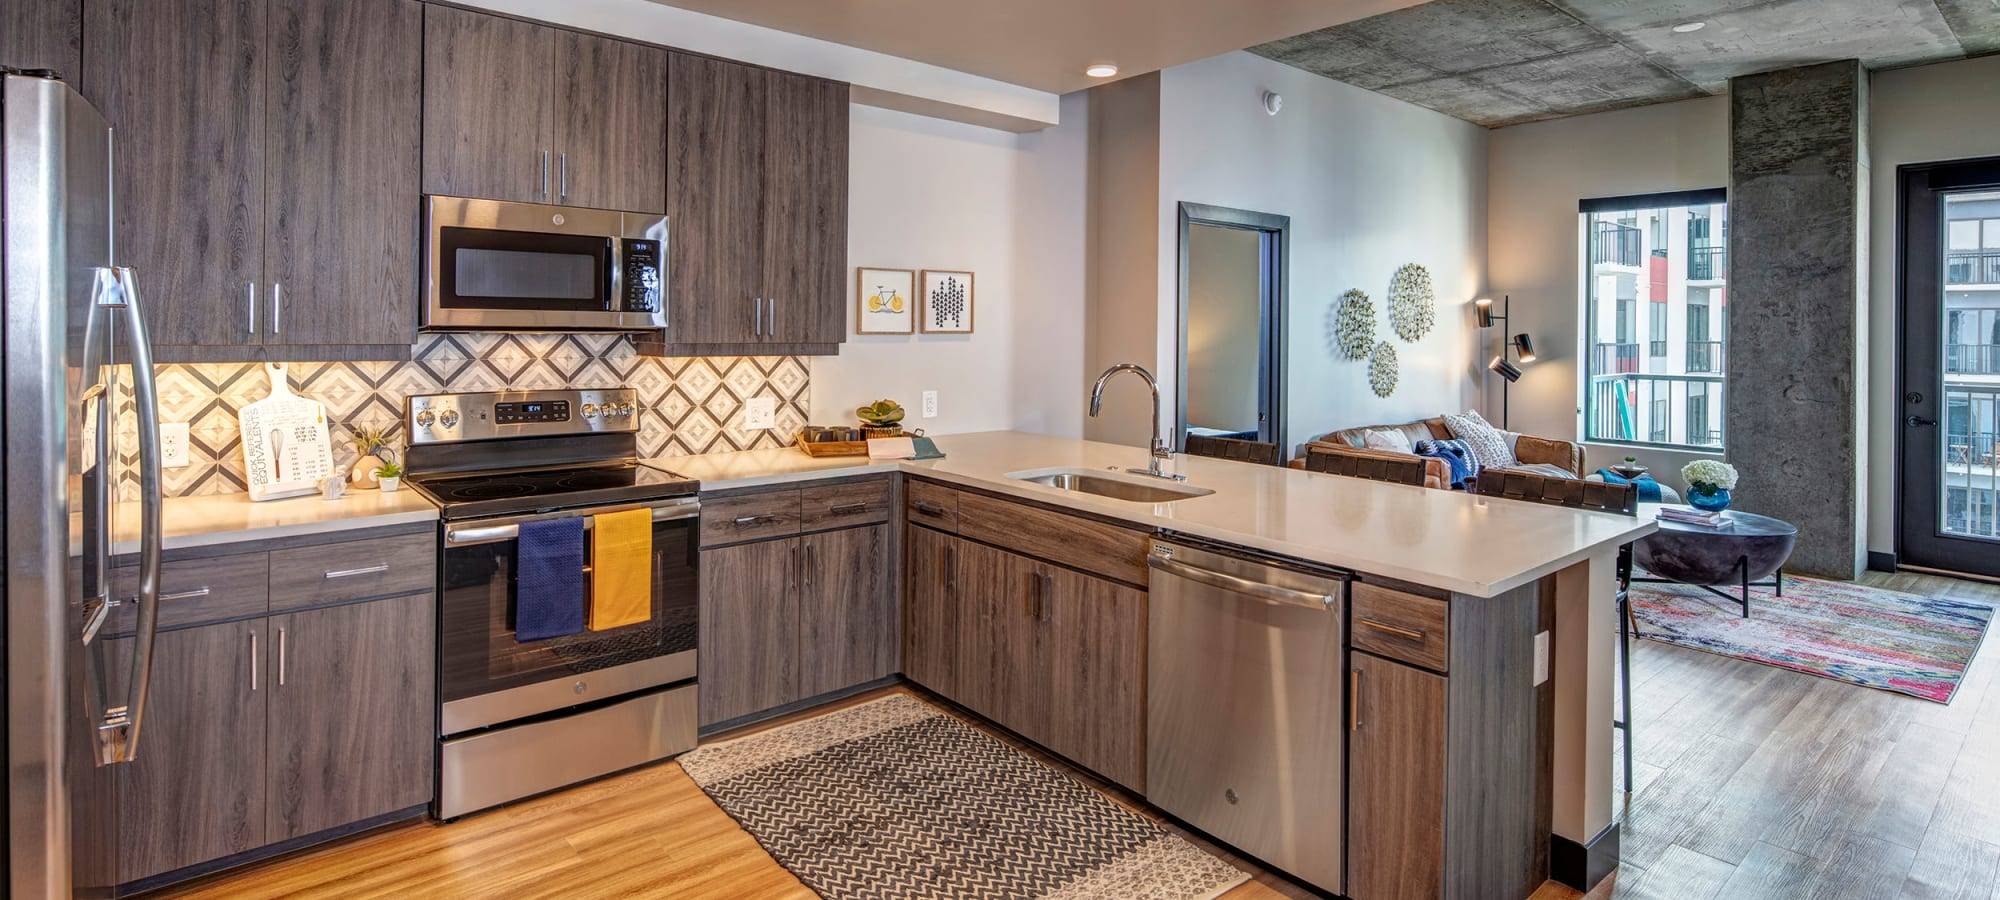 spacious kitchen and living room at The Local Apartments in Tempe, Arizona